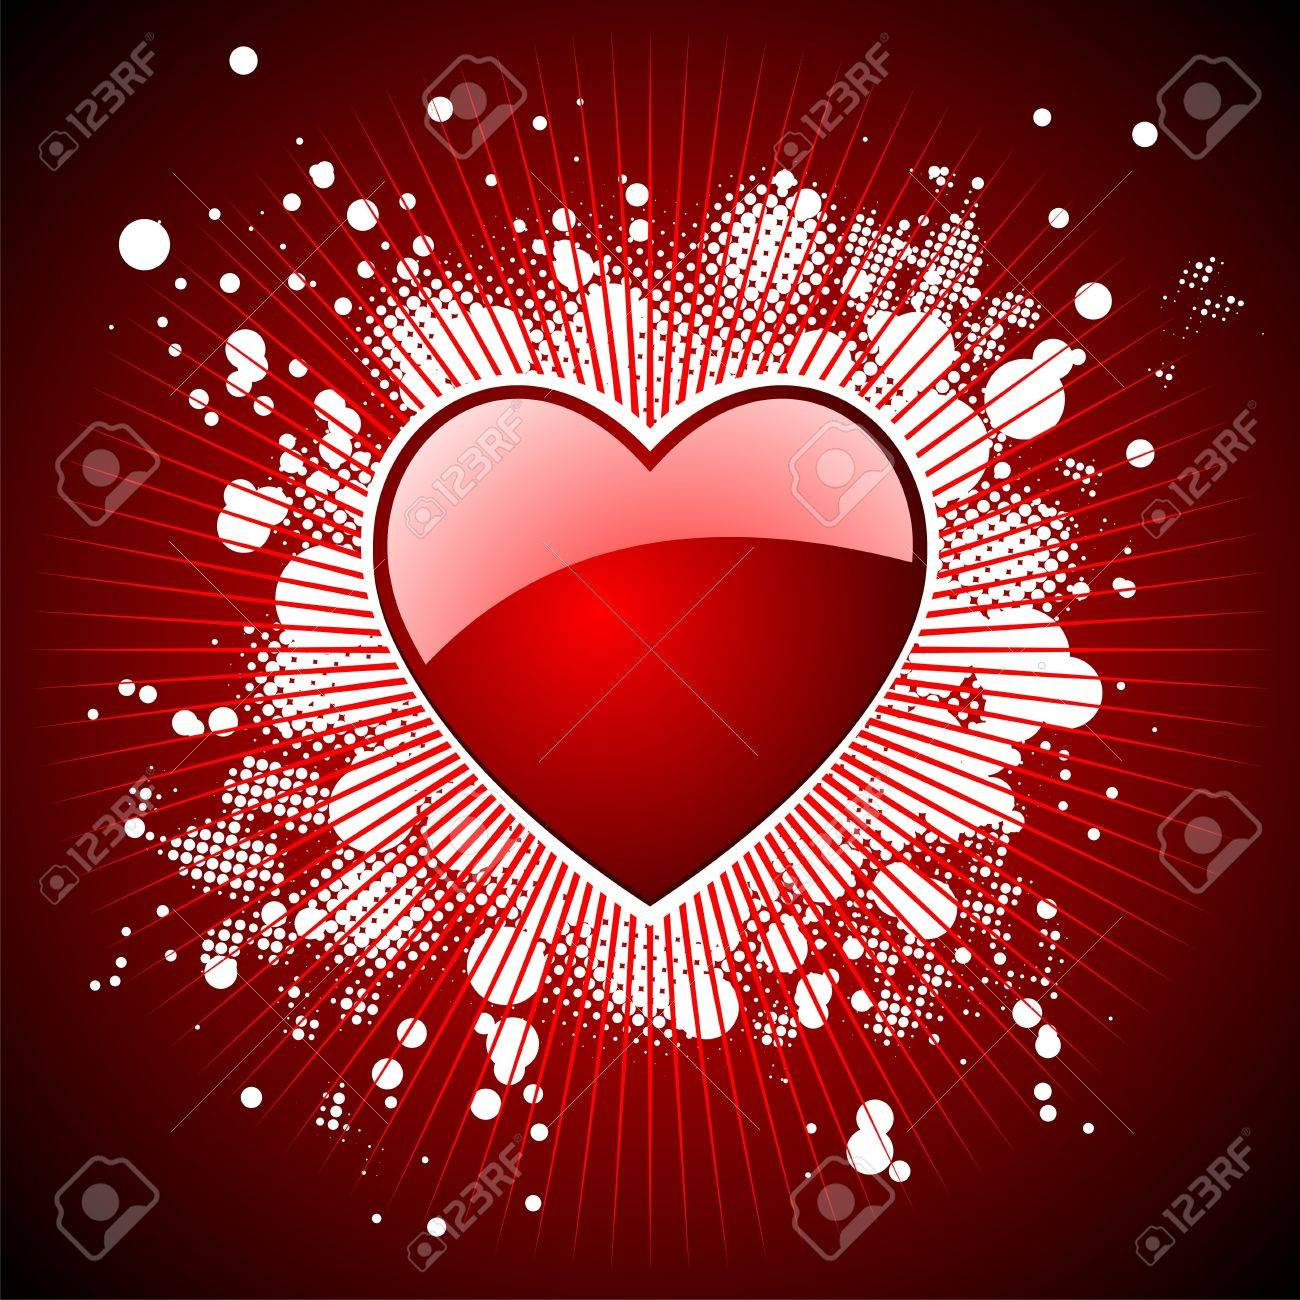 Valentine's day illustration with glossy red hearts. Stock Vector - 7316283